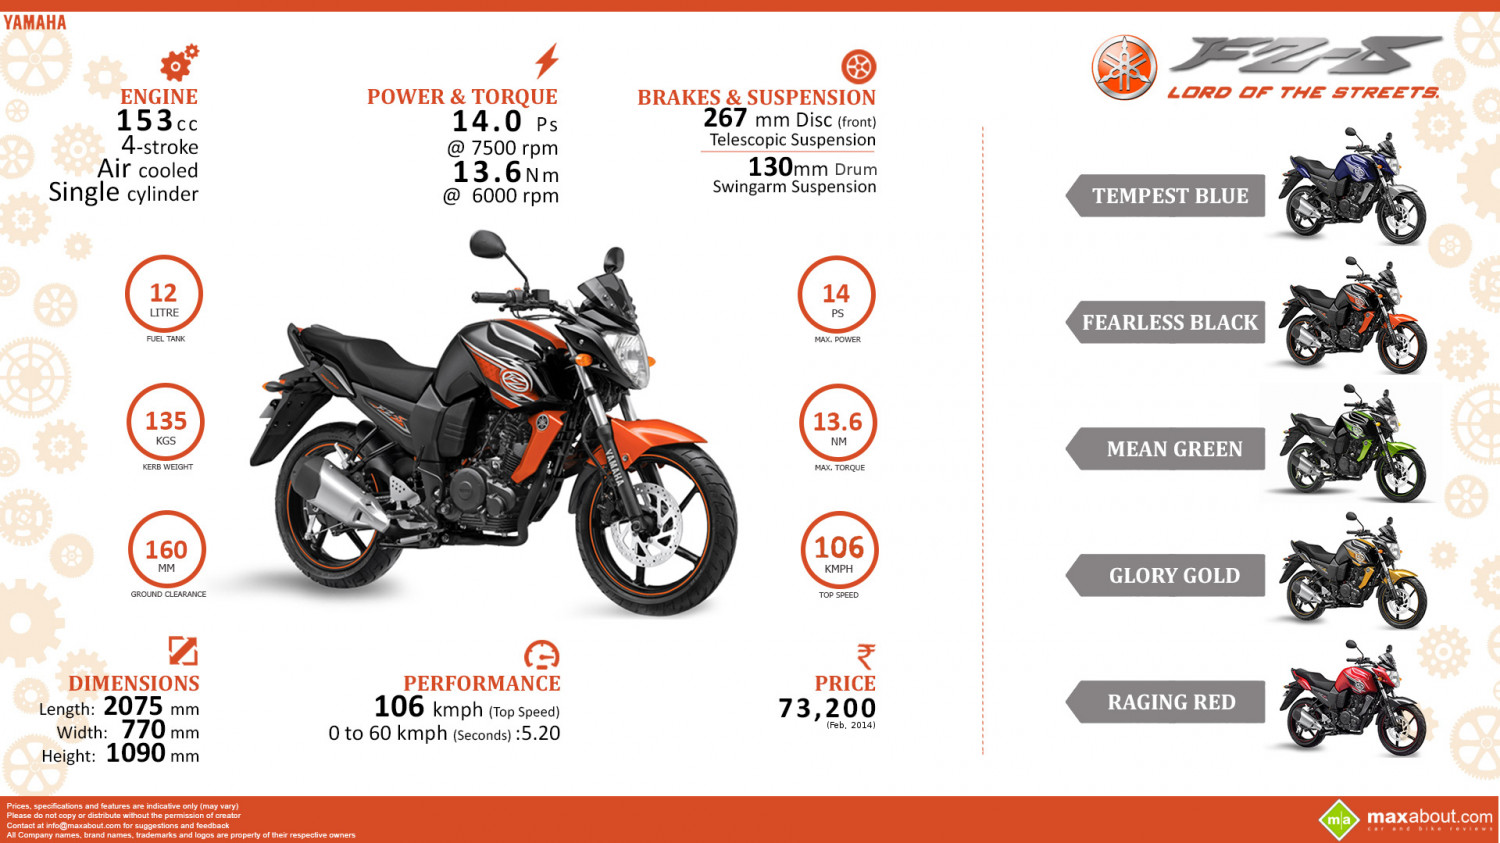 Yamaha FZS: Quick Facts Infographic